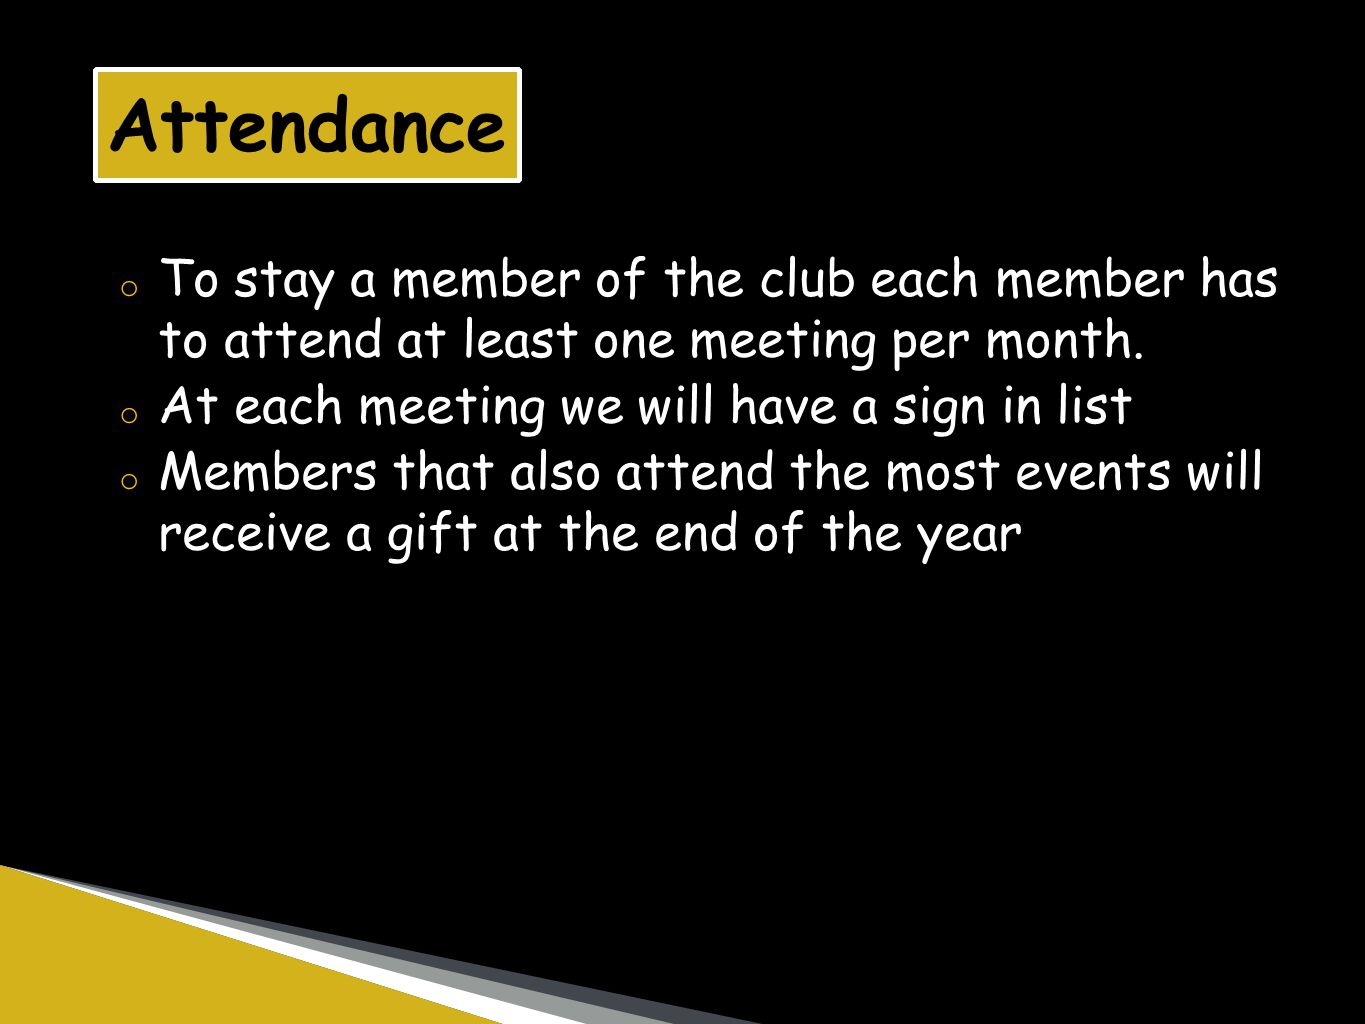 o To stay a member of the club each member has to attend at least one meeting per month.